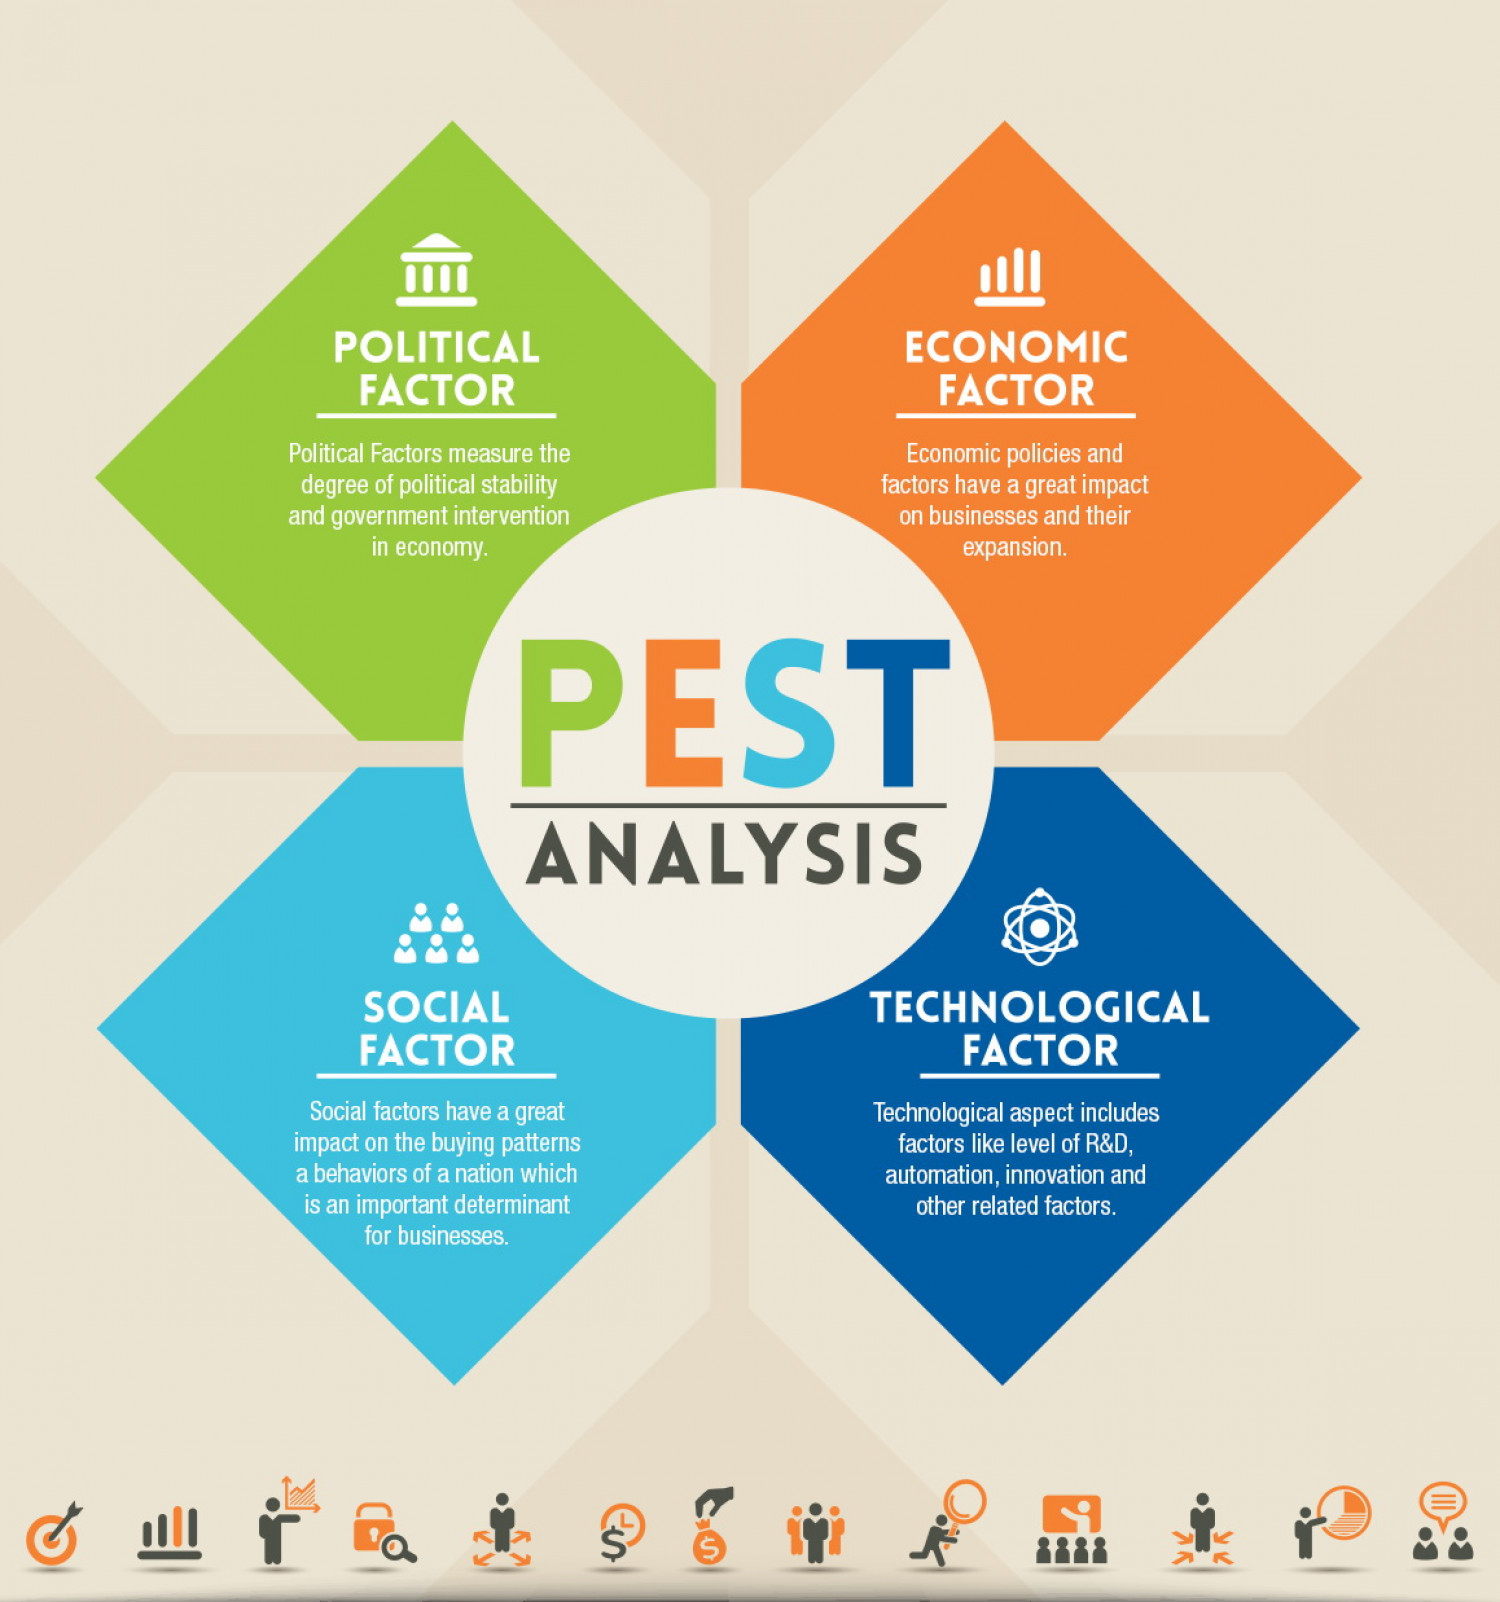 macro environment analysis Marketing environment the marketing environment consists of the micro and macro environment macro environmental factors include social these are sometimes referred to as the pestle factors and are discussed in more detail in pestle analysis.